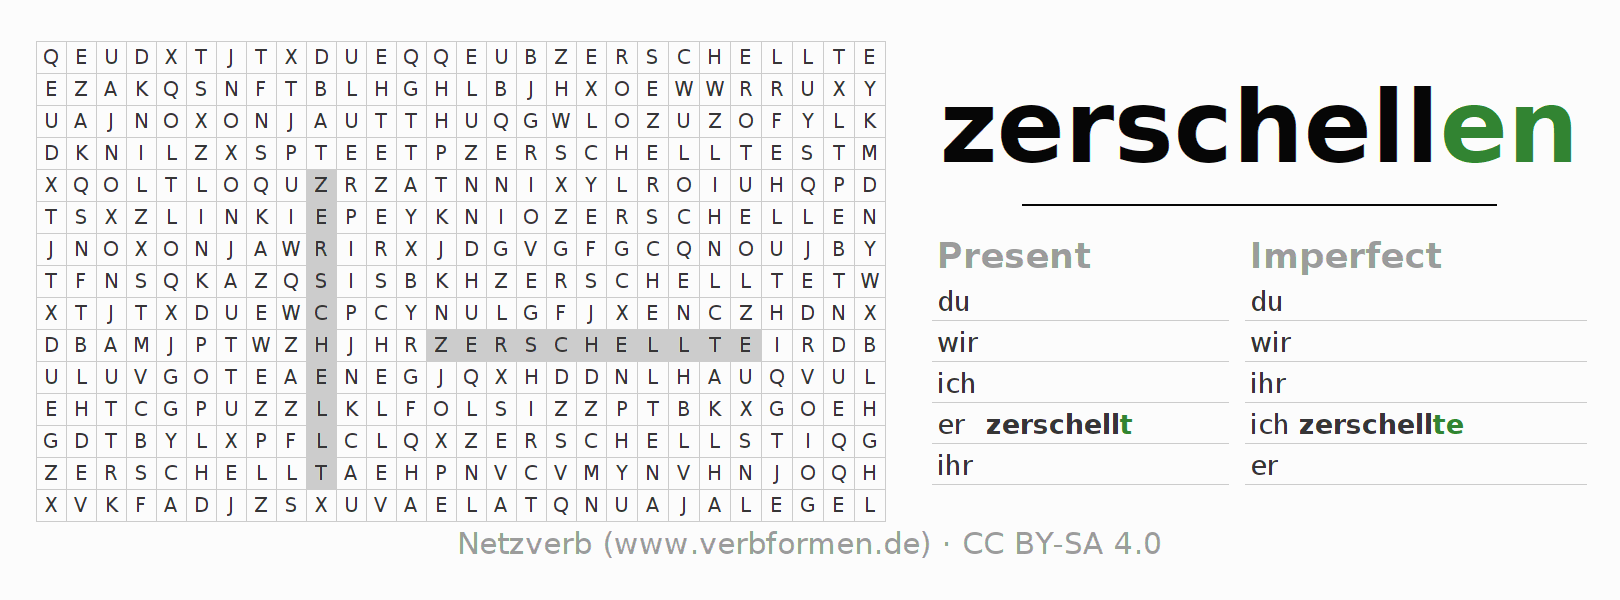 Word search puzzle for the conjugation of the verb zerschellen